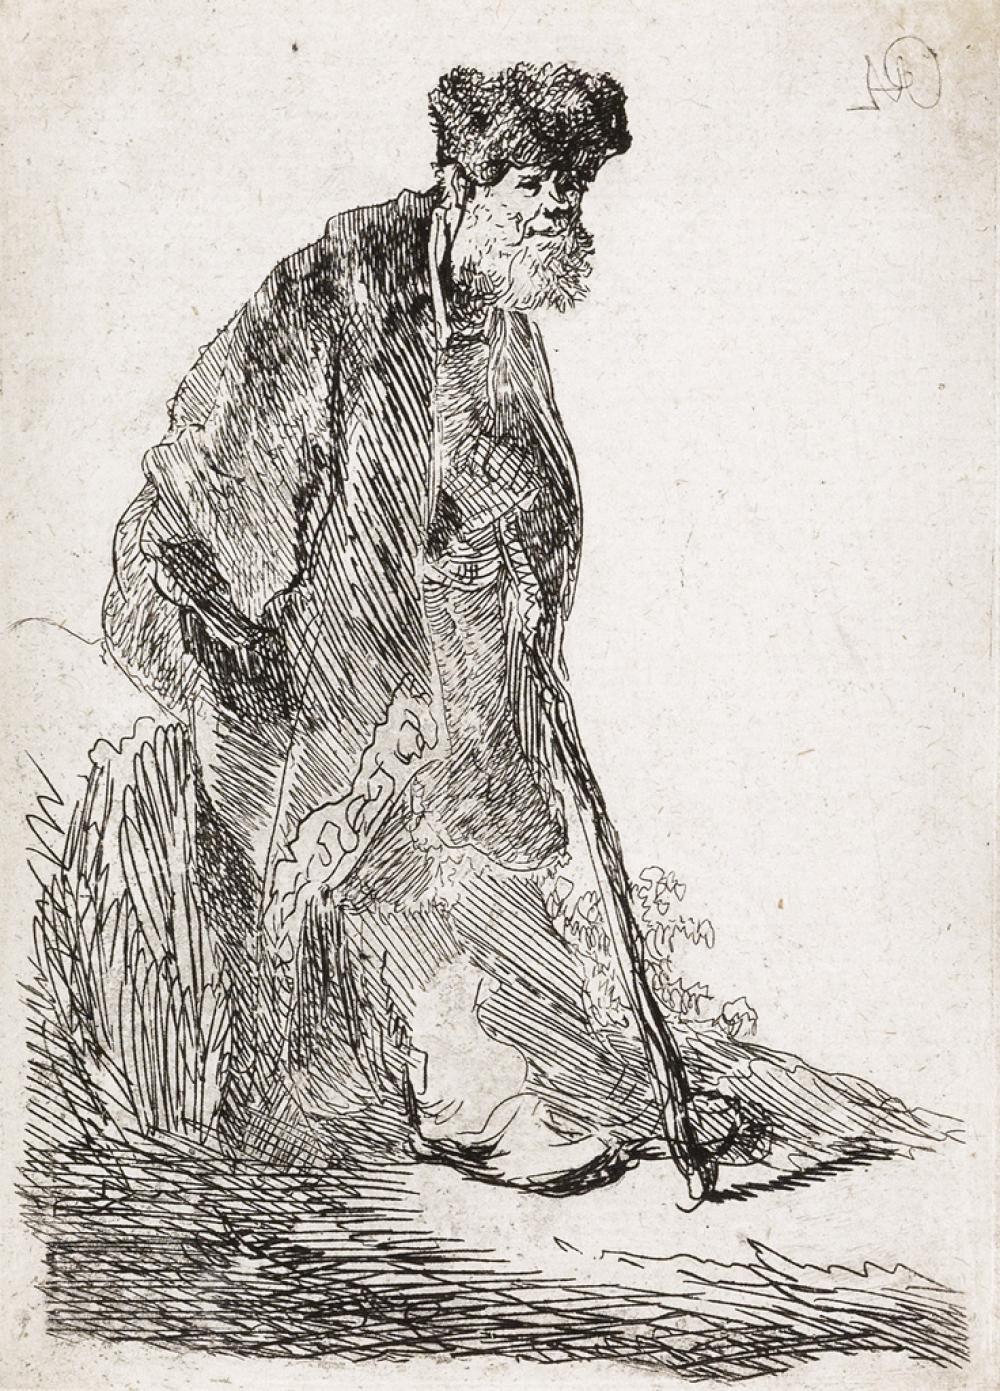 REMBRANDT VAN RIJN Man in Coat and Fur Cap Leaning against a Bank.